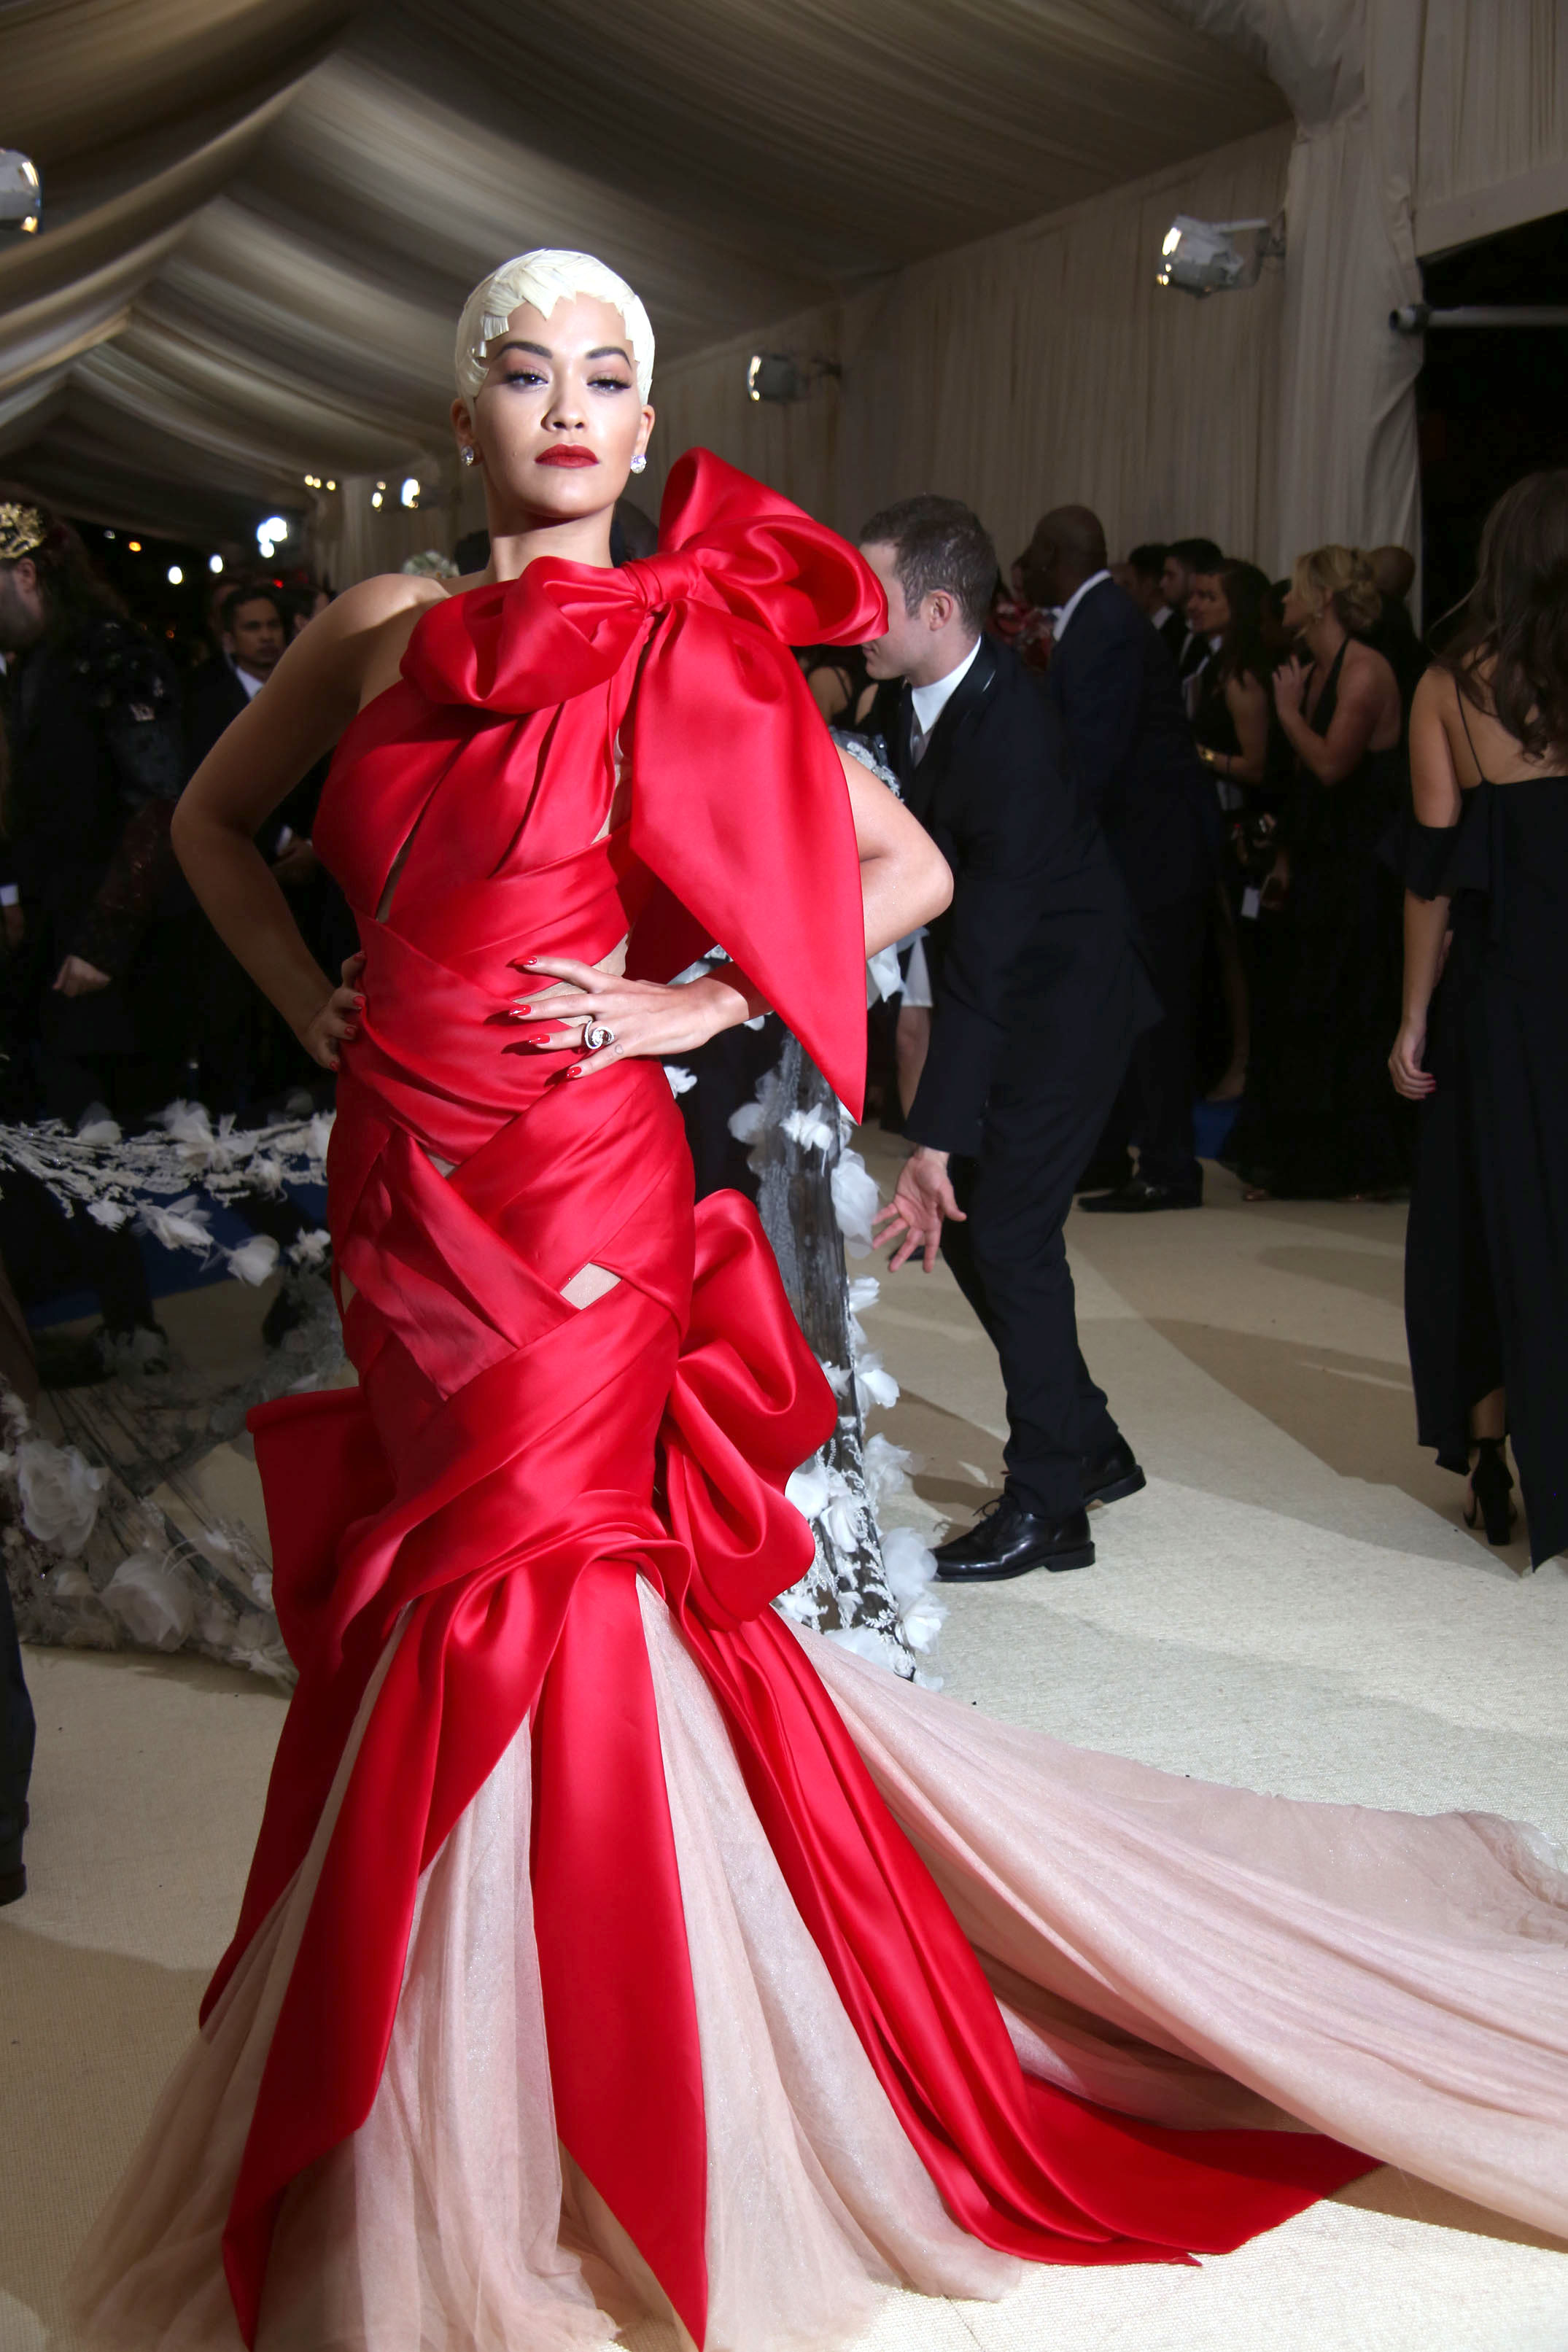 May 1, 2017 - New York, New York, U.S. - RITA ORA attends the Metropolitan Museum Costume Institute Benefit celebrating the exhibition of Rei Kawakubo/Comme des Garcons-Art of the In Between.Met Museum,NYC.May 1, 2017.Photos by , Photos Inc. (Credit: © Globe-ZUMA